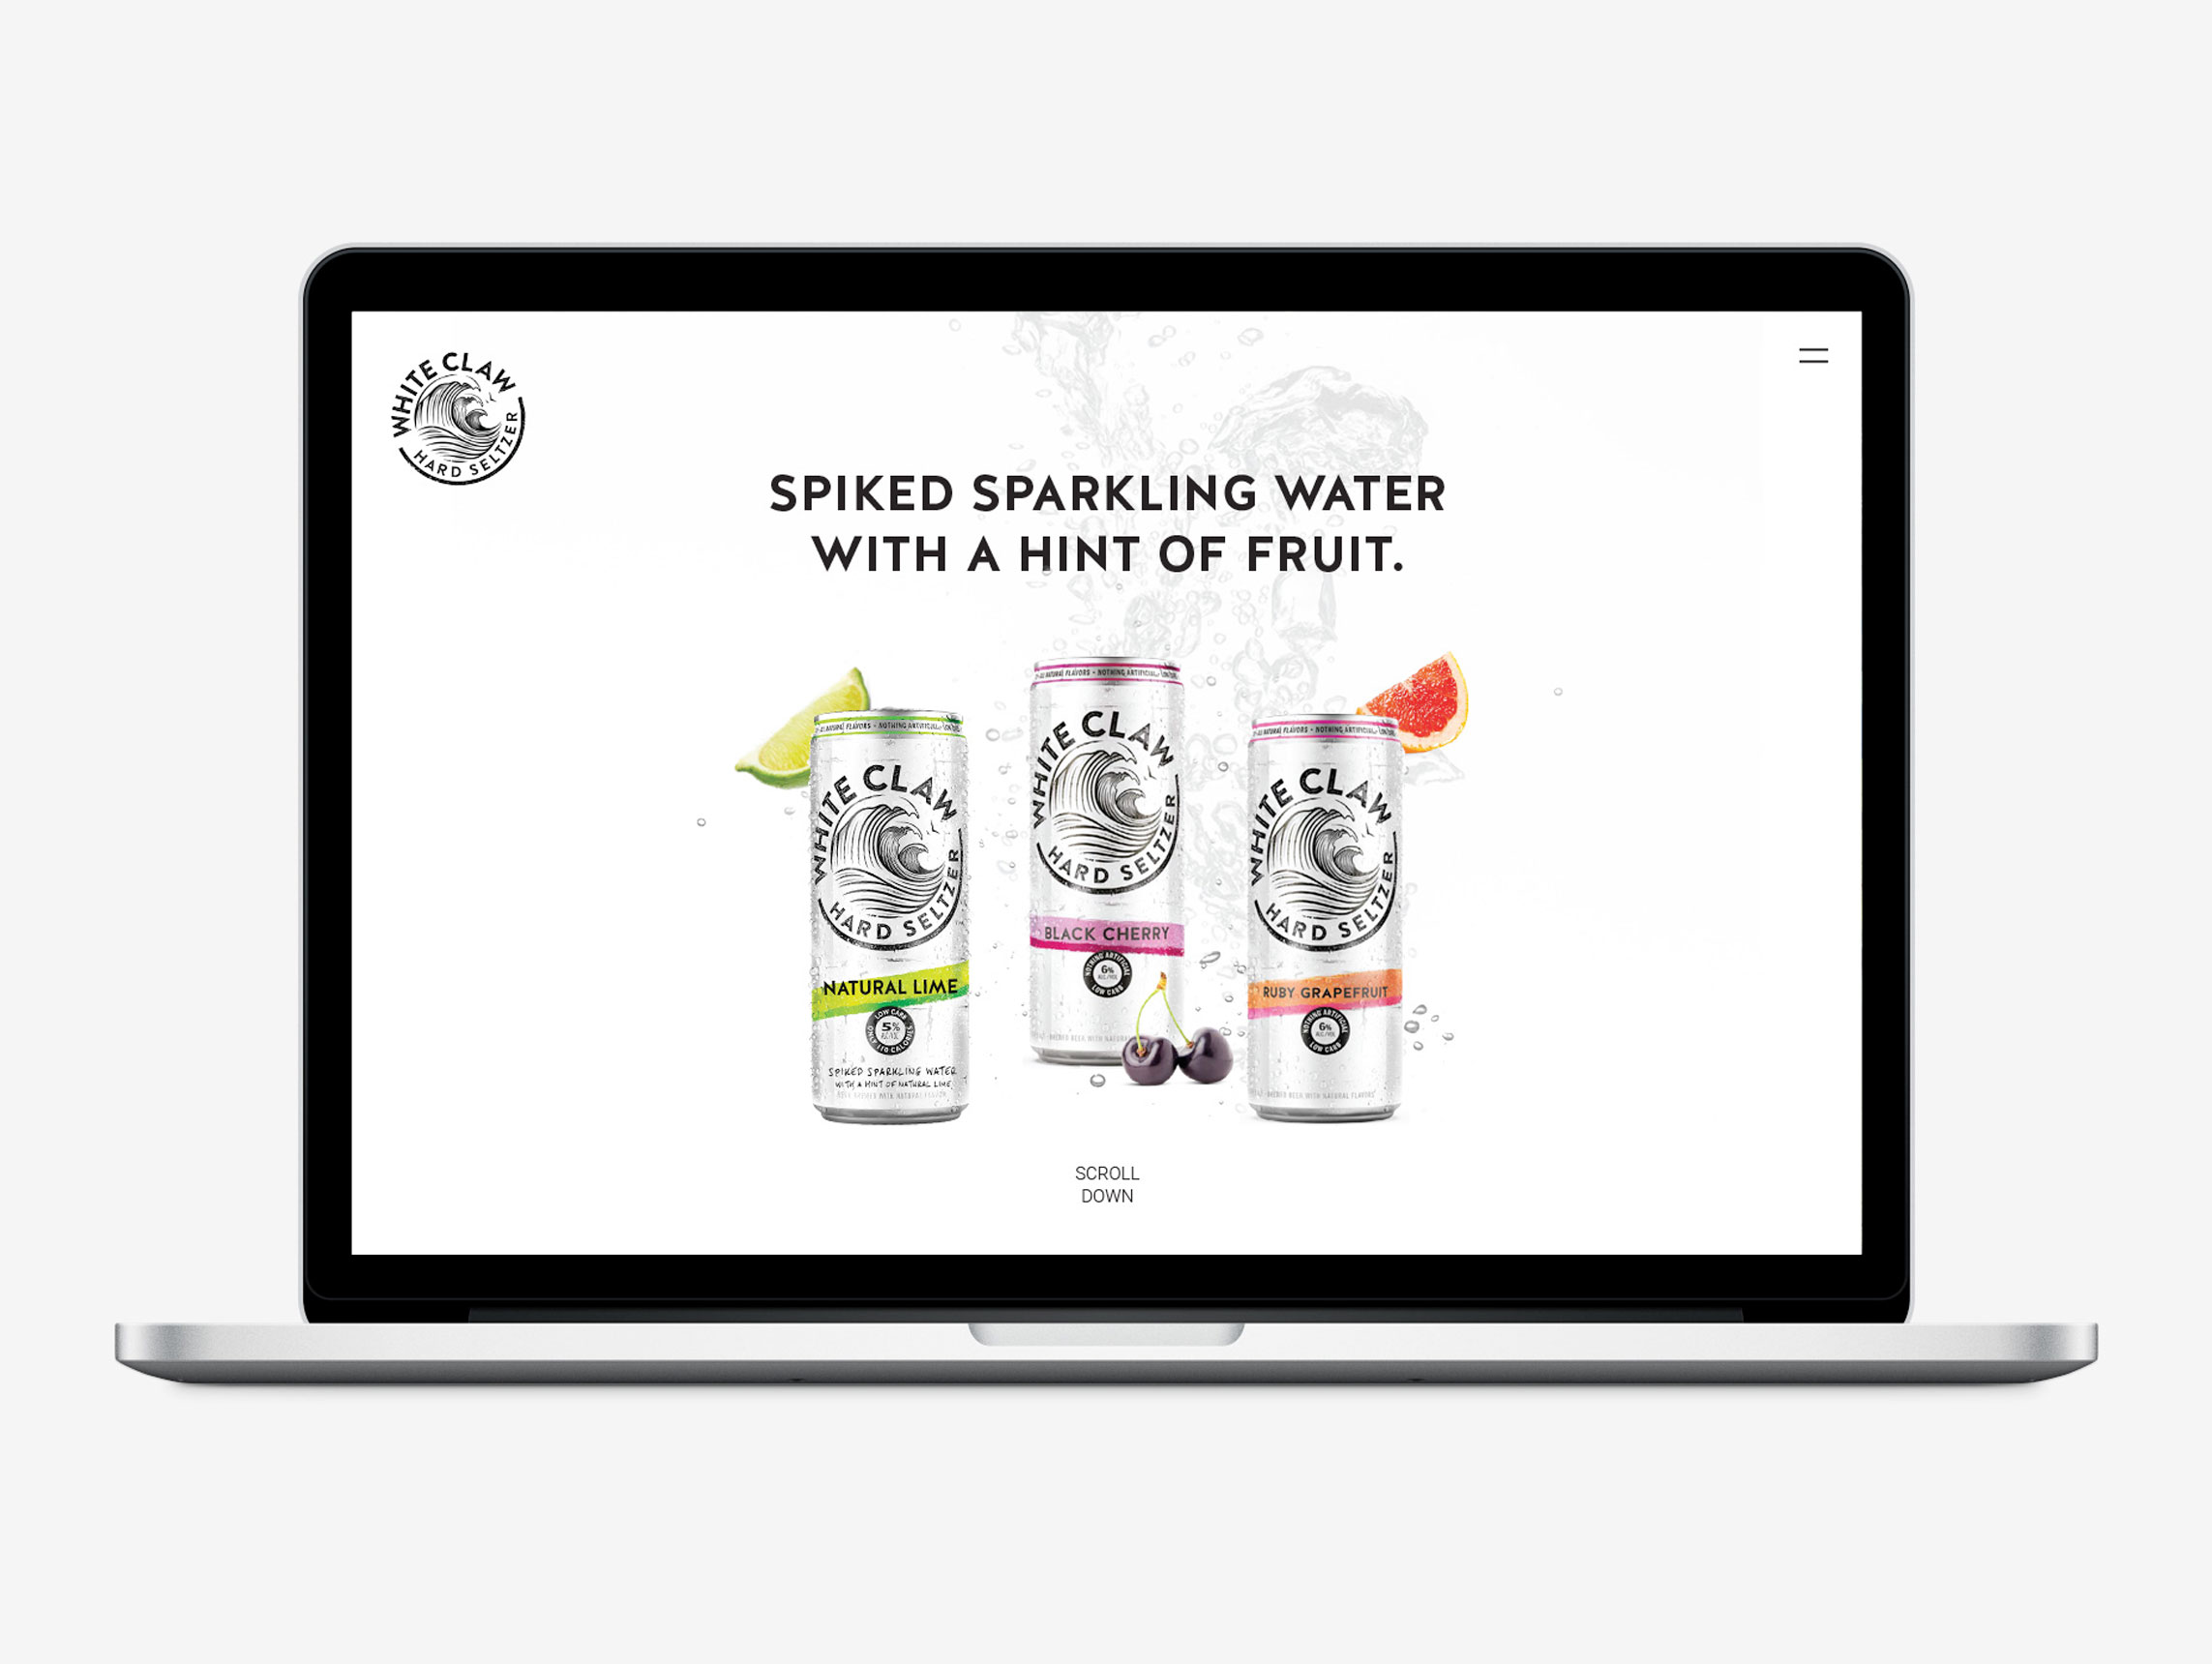 White Claw Hard Seltzer first website design and development home page by Agency Squid creative advertising agency